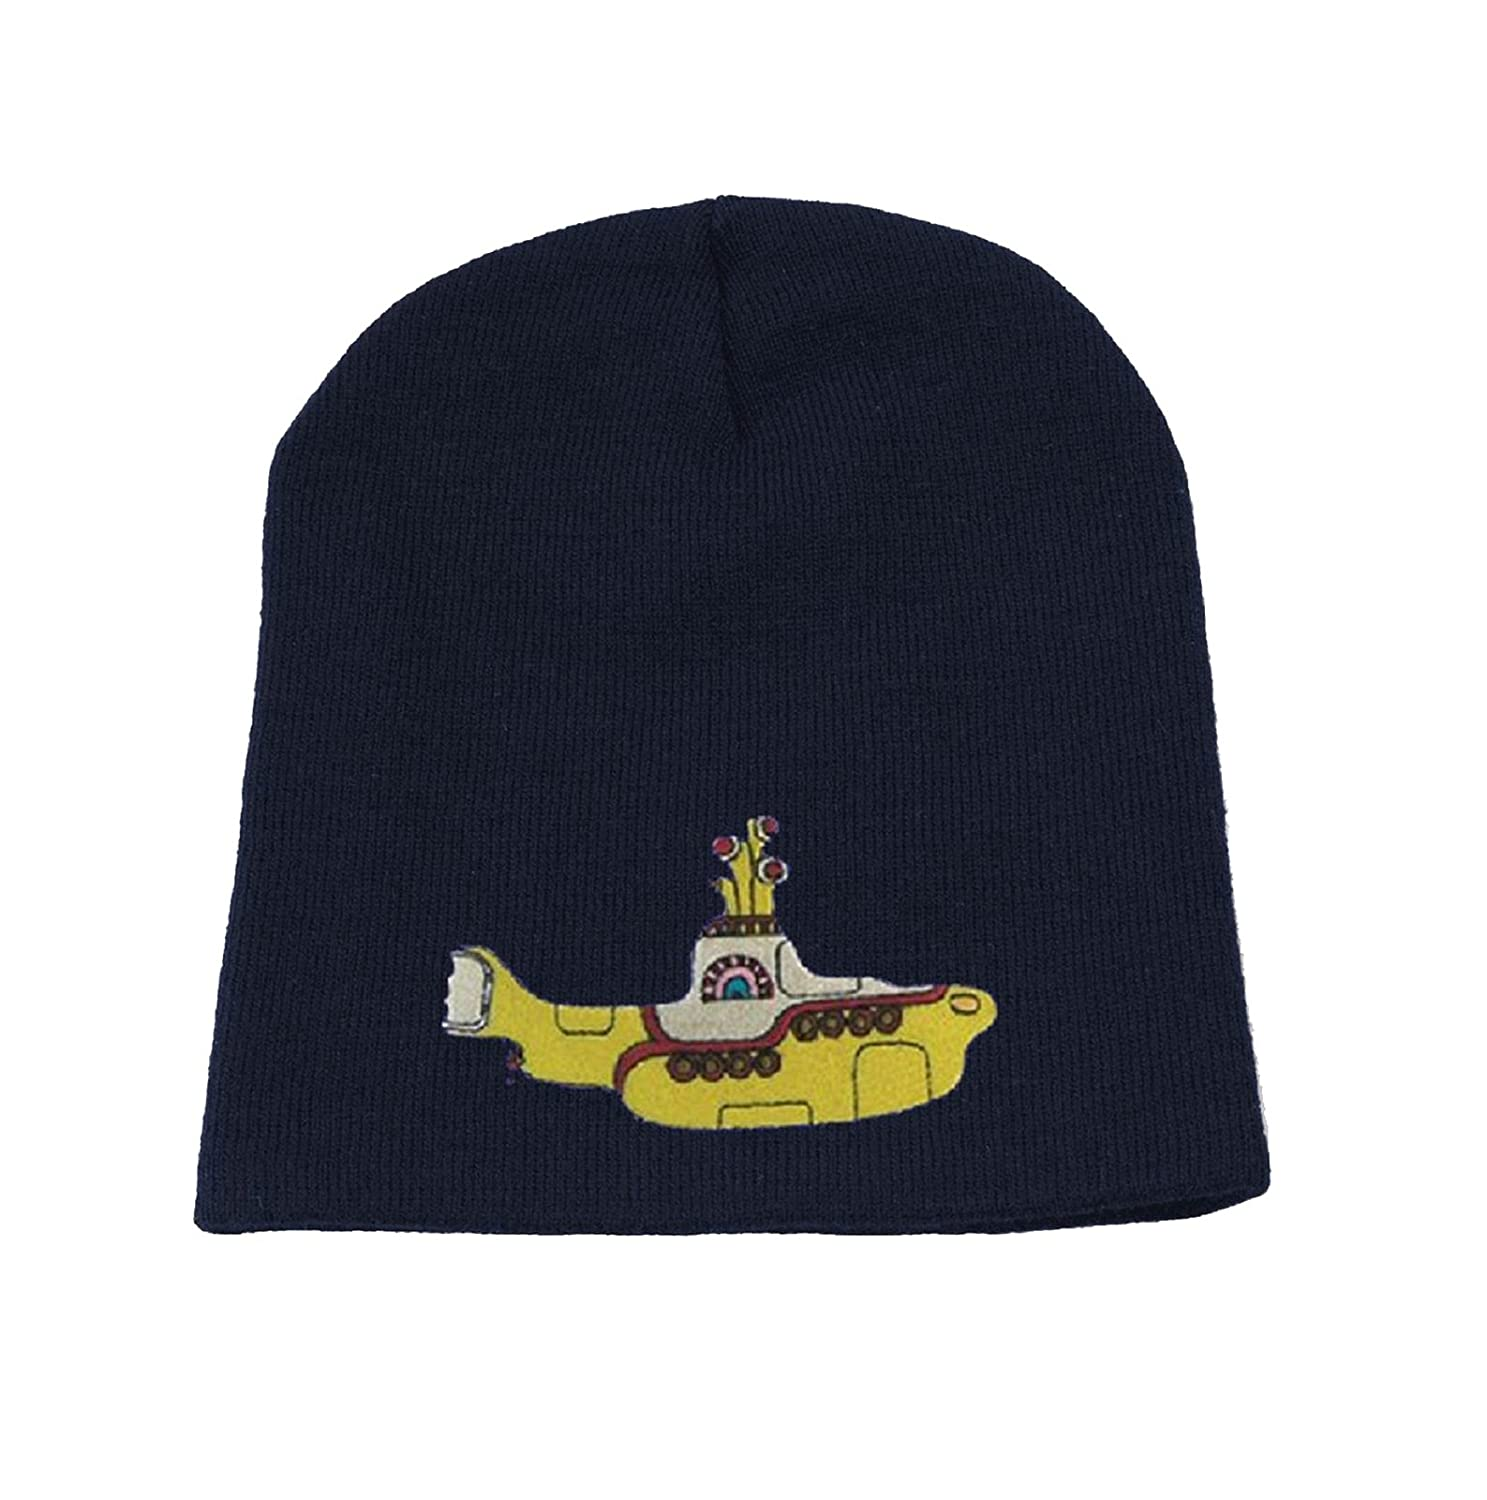 The Beatles Beanie Hat Cap Yellow Submarine new Official